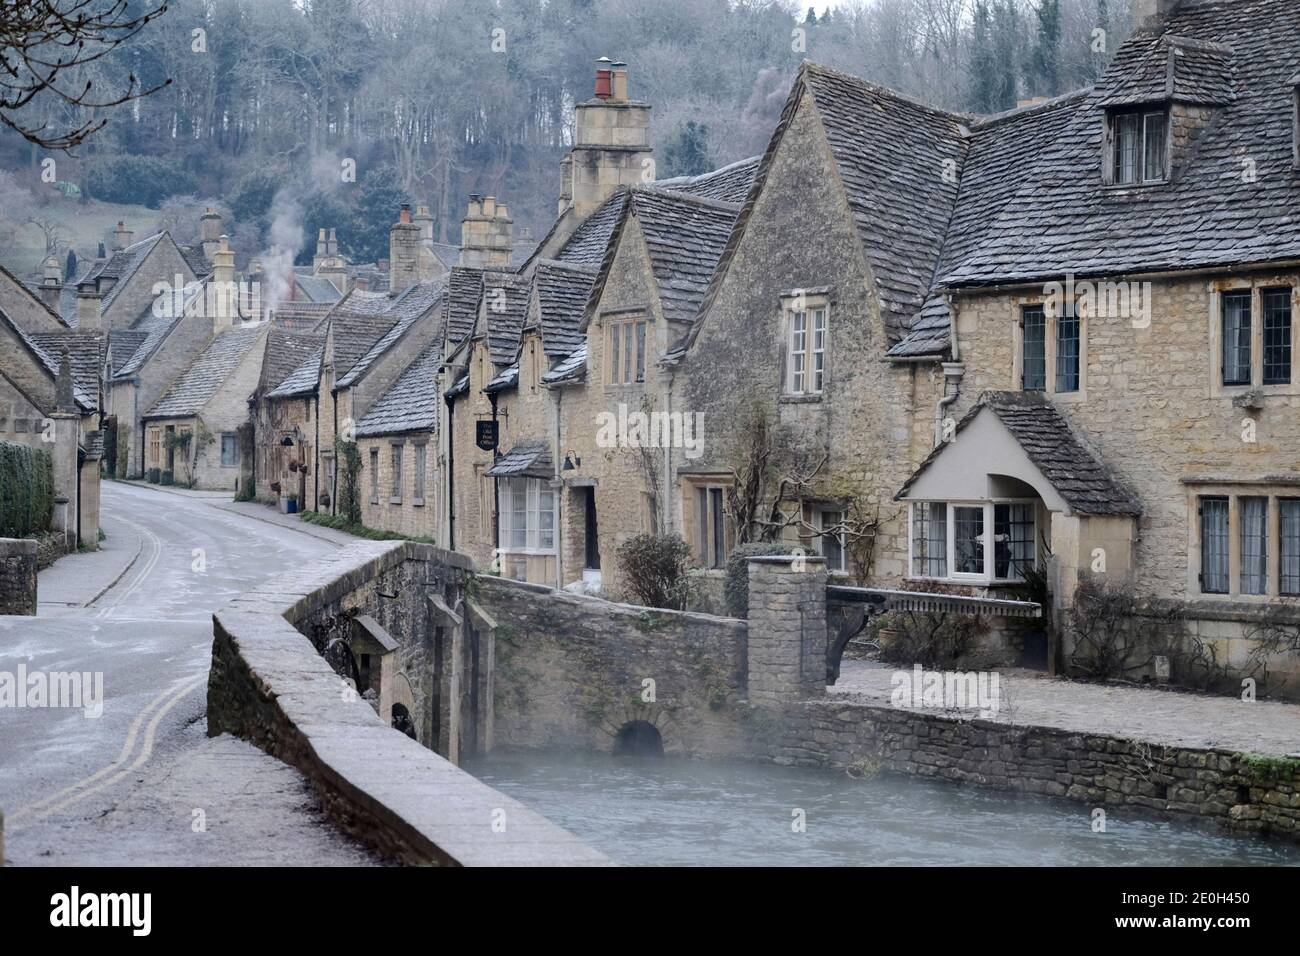 Castle Combe, Wiltshire, UK. 1st Jan, 2021. Mist on the river on a frosty New Year's Day in the historic village of Castle Combe. Credit: JMF News/Alamy Live News Stock Photo